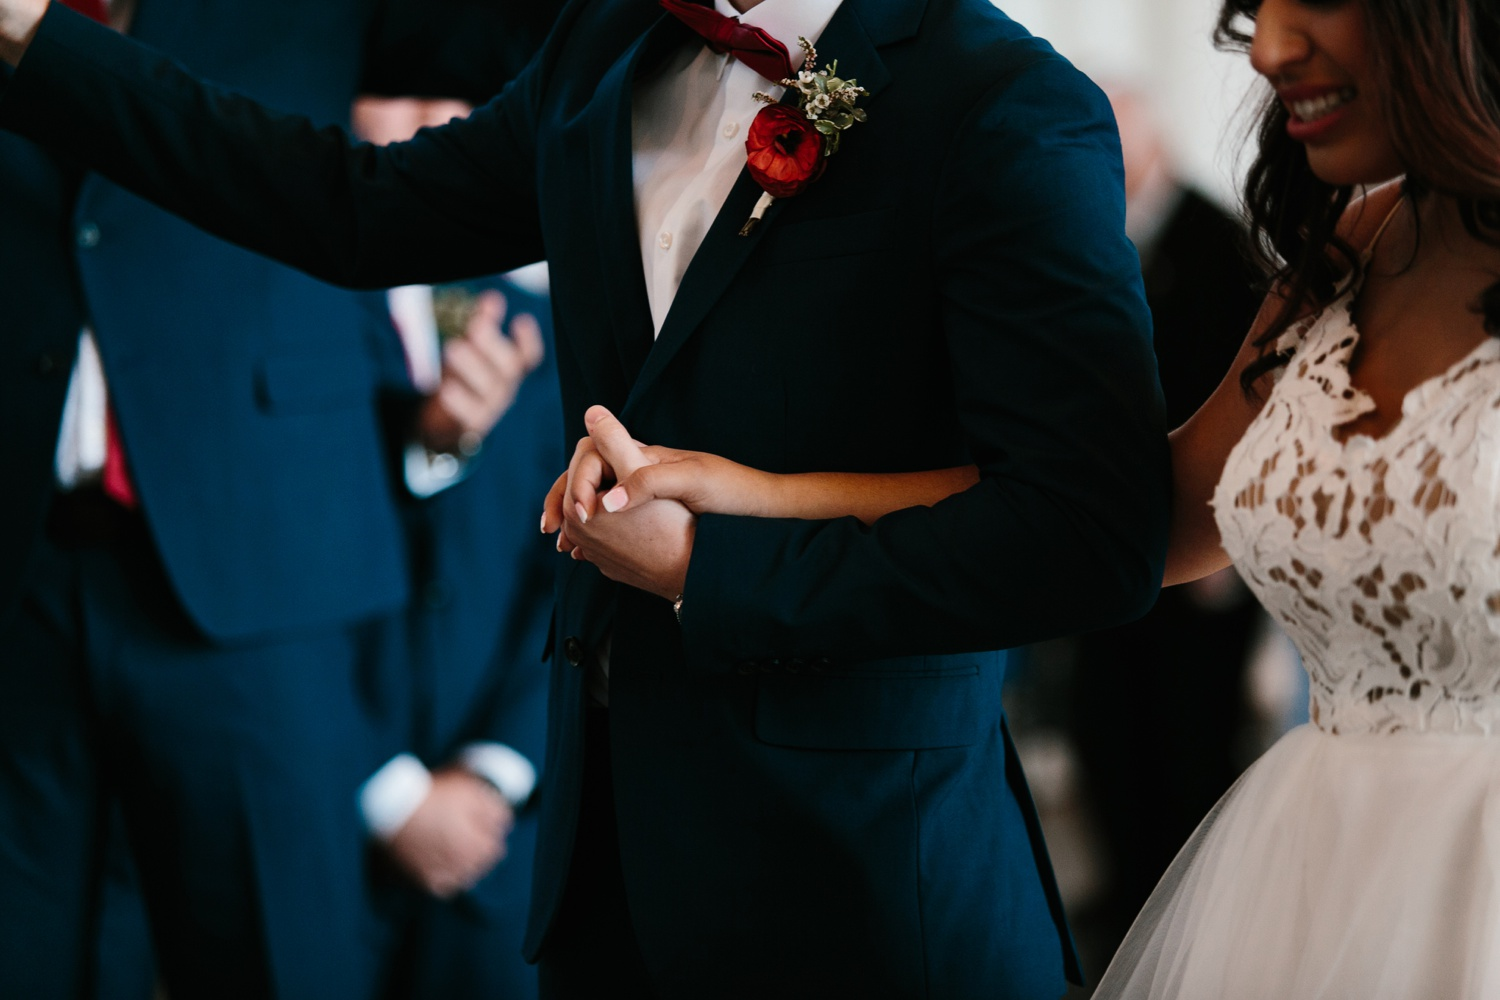 Grant + Lysette | a vibrant, deep burgundy and navy, and mixed metals wedding at Hidden Pines Chapel by North Texas Wedding Photographer Rachel Meagan Photography 072